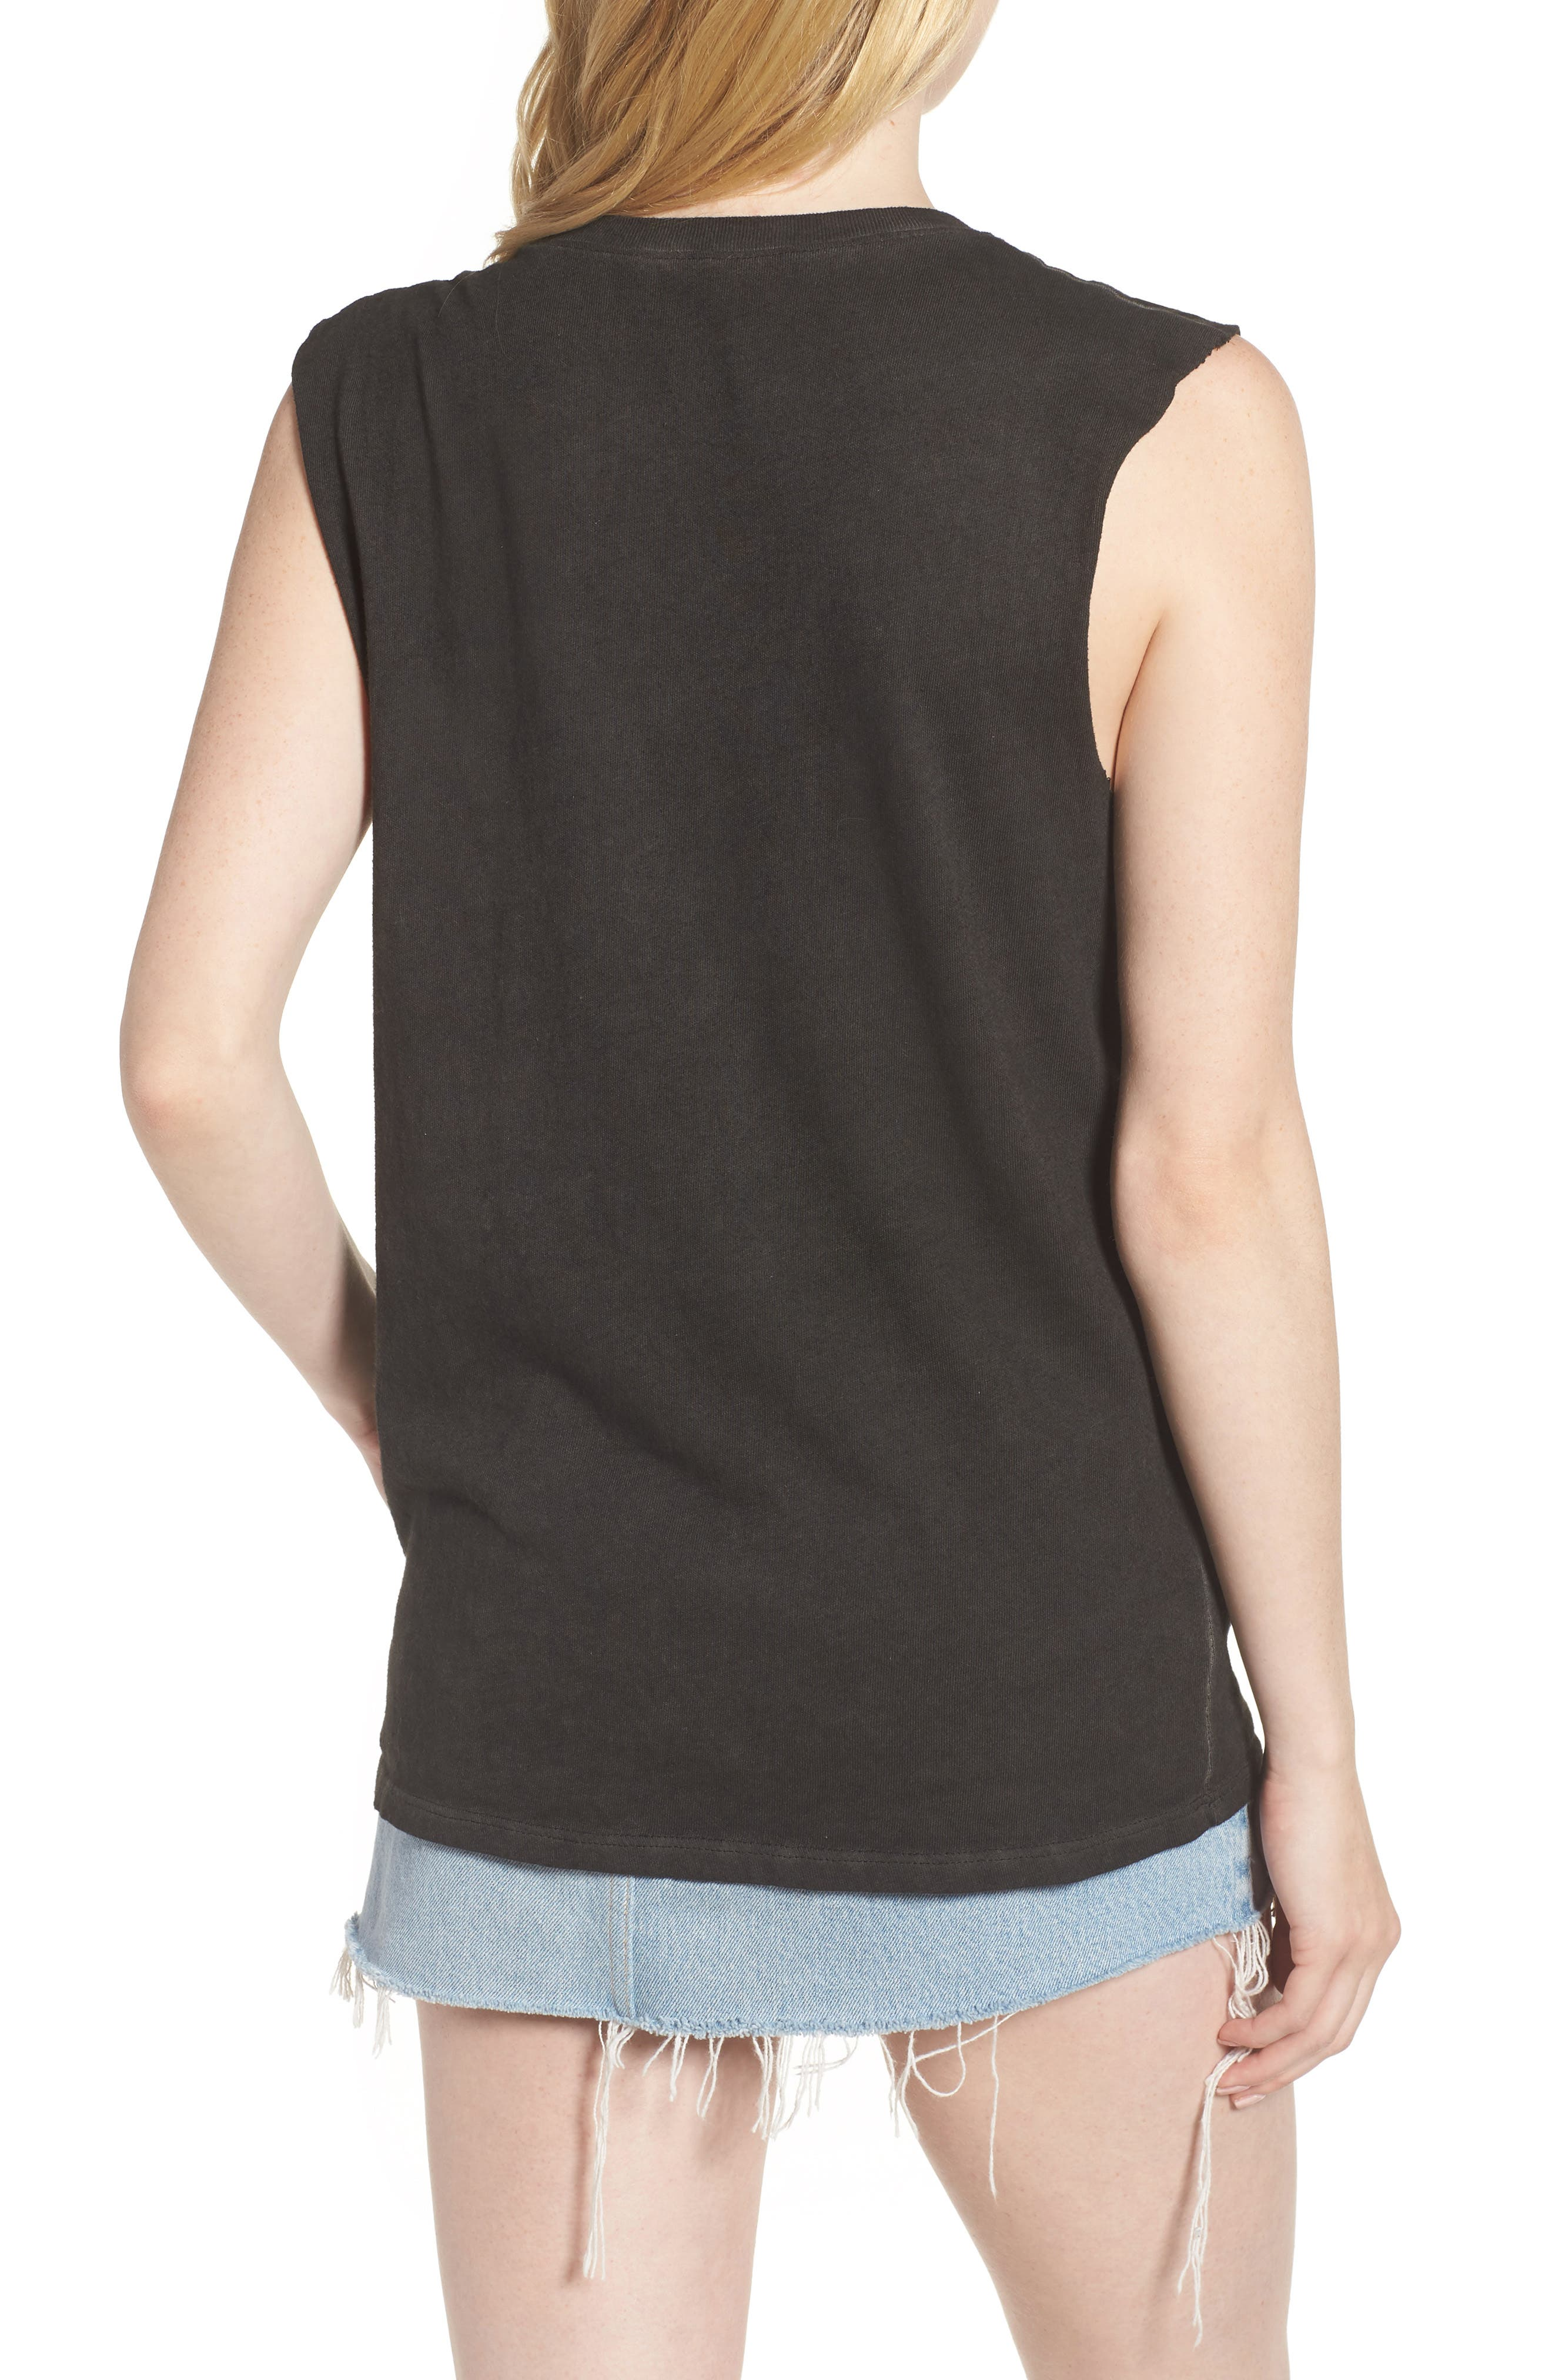 x Grease Muscle Tee,                             Alternate thumbnail 2, color,                             Vintage Black